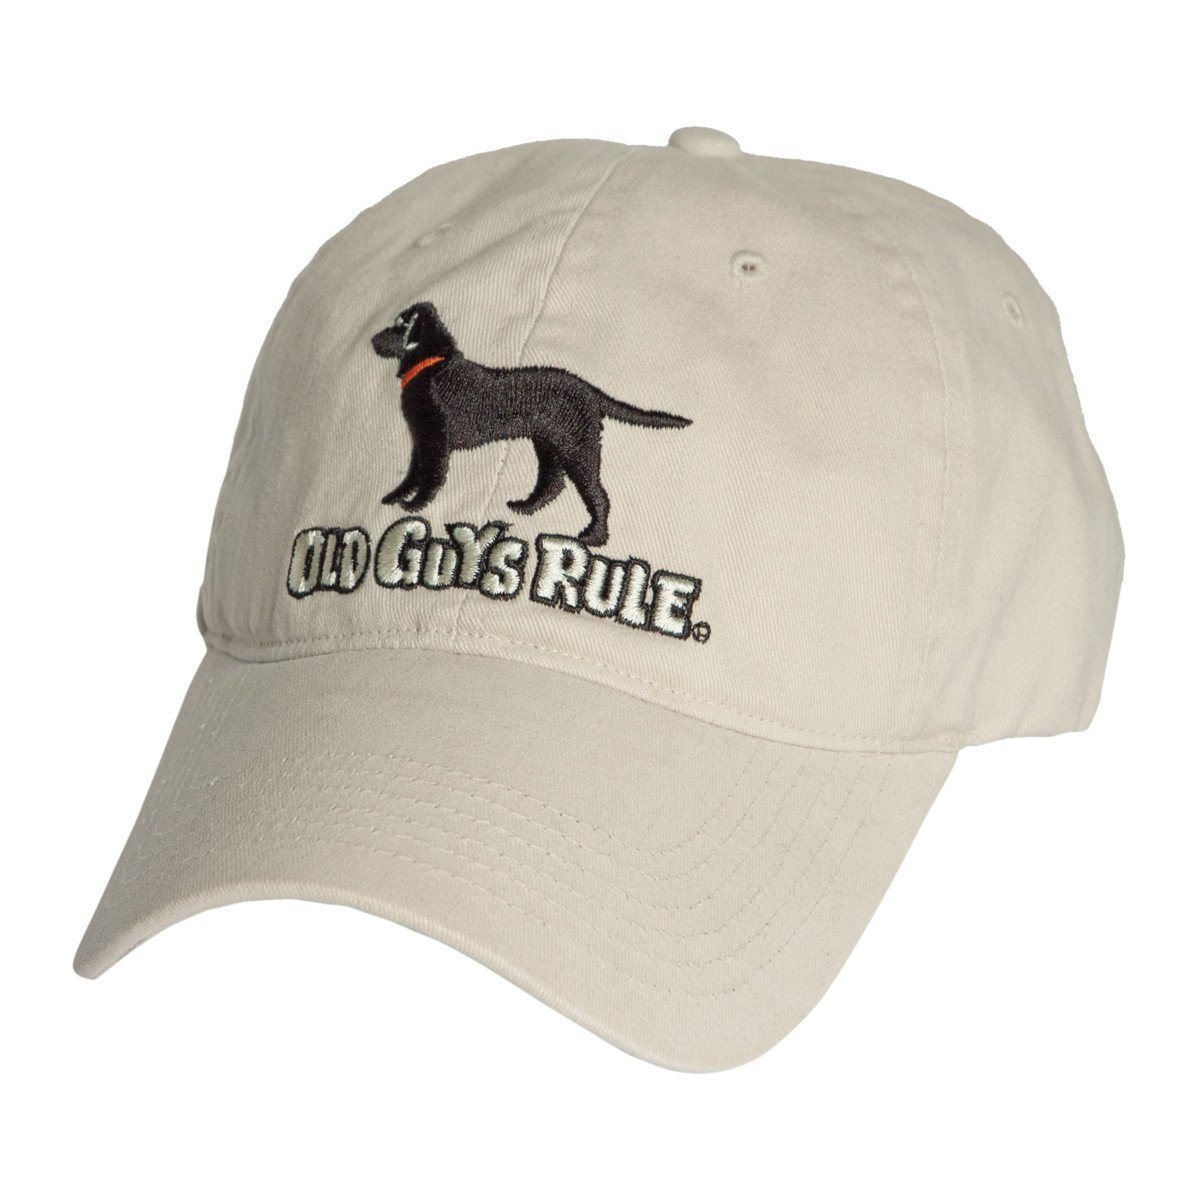 Old Guys Rule - Hat - Black Lab - Stone - Front View